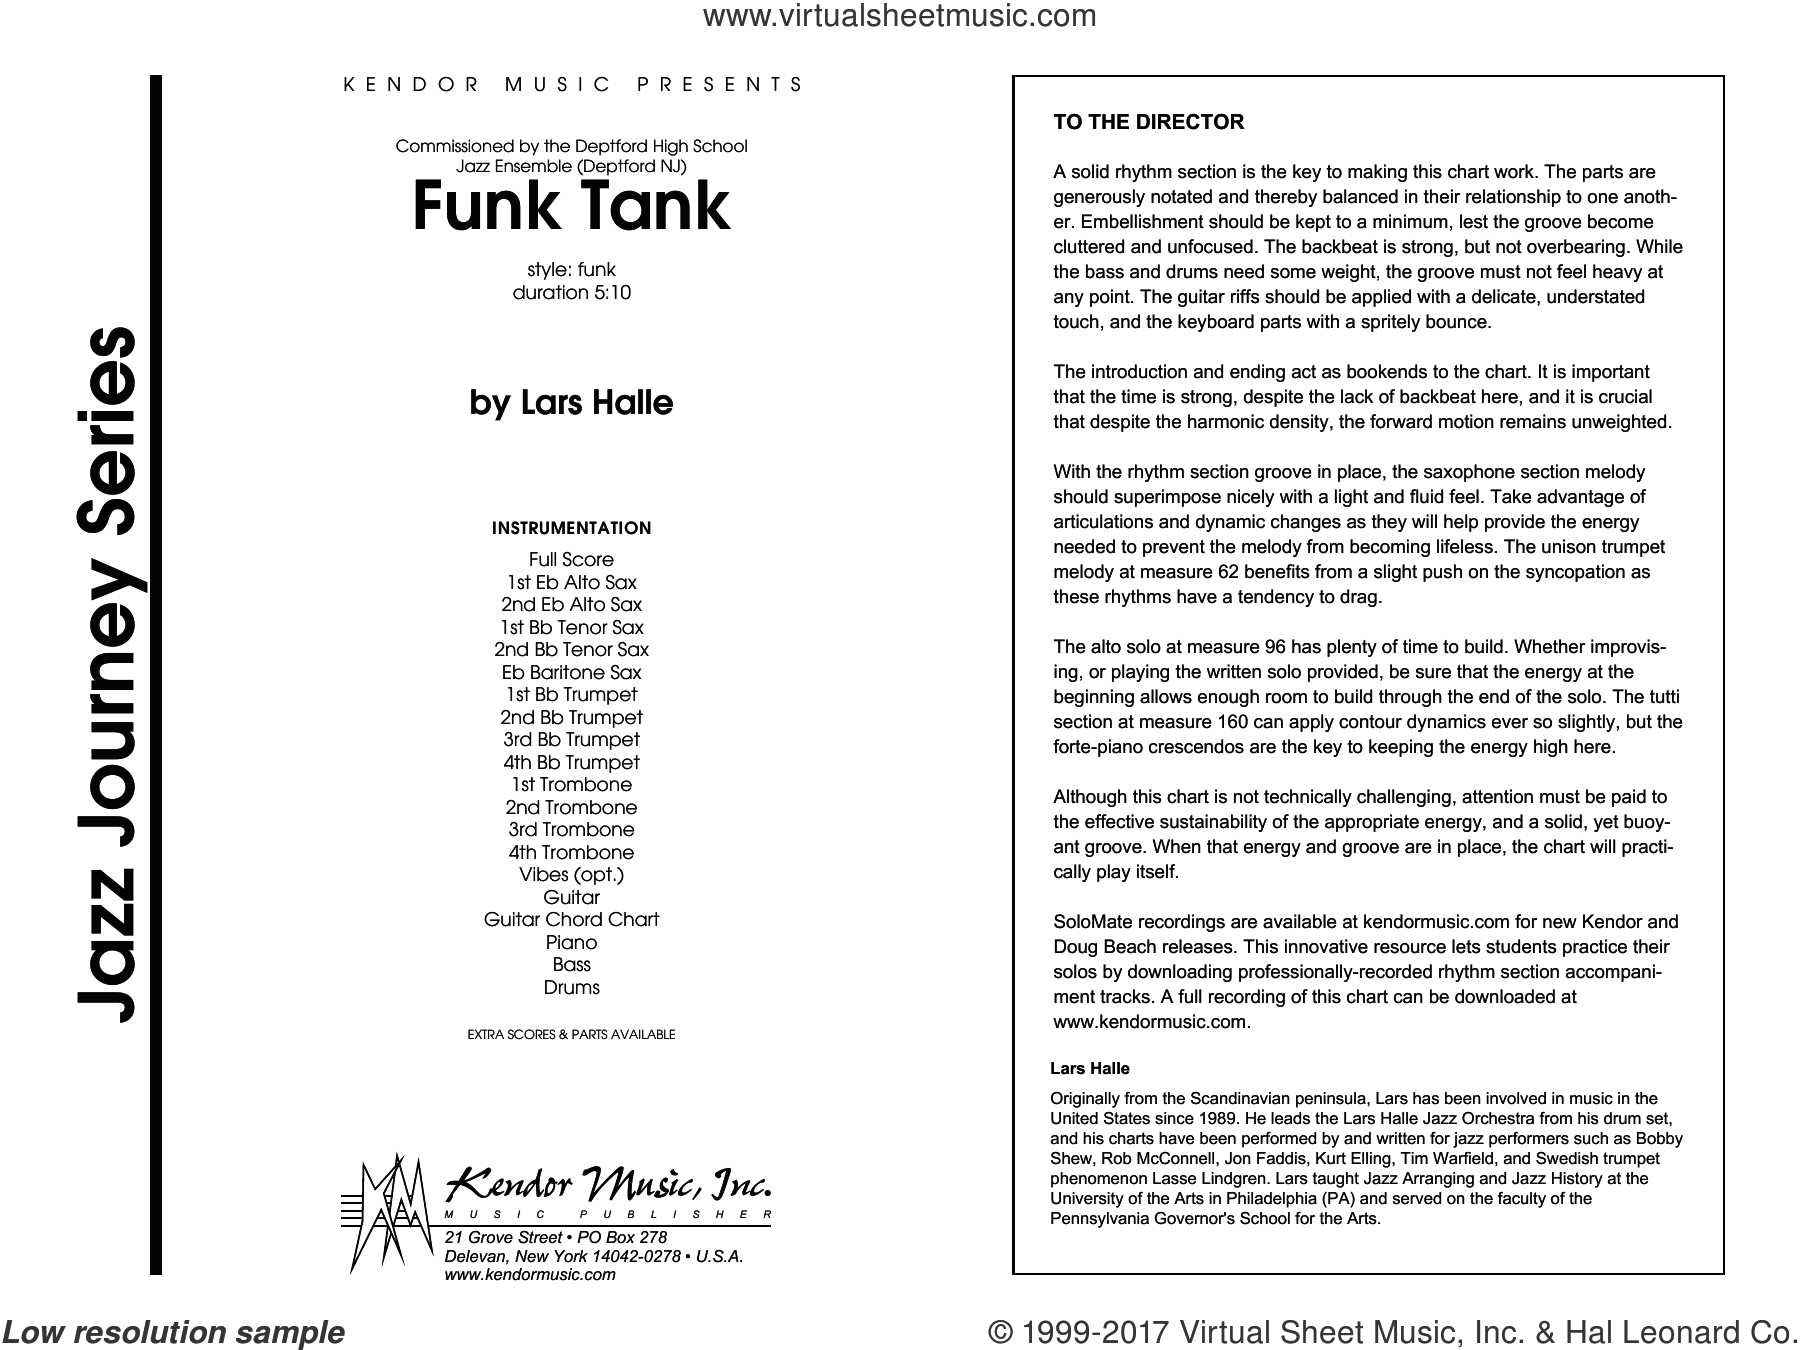 Halle - Funk Tank sheet music (complete collection) for jazz band